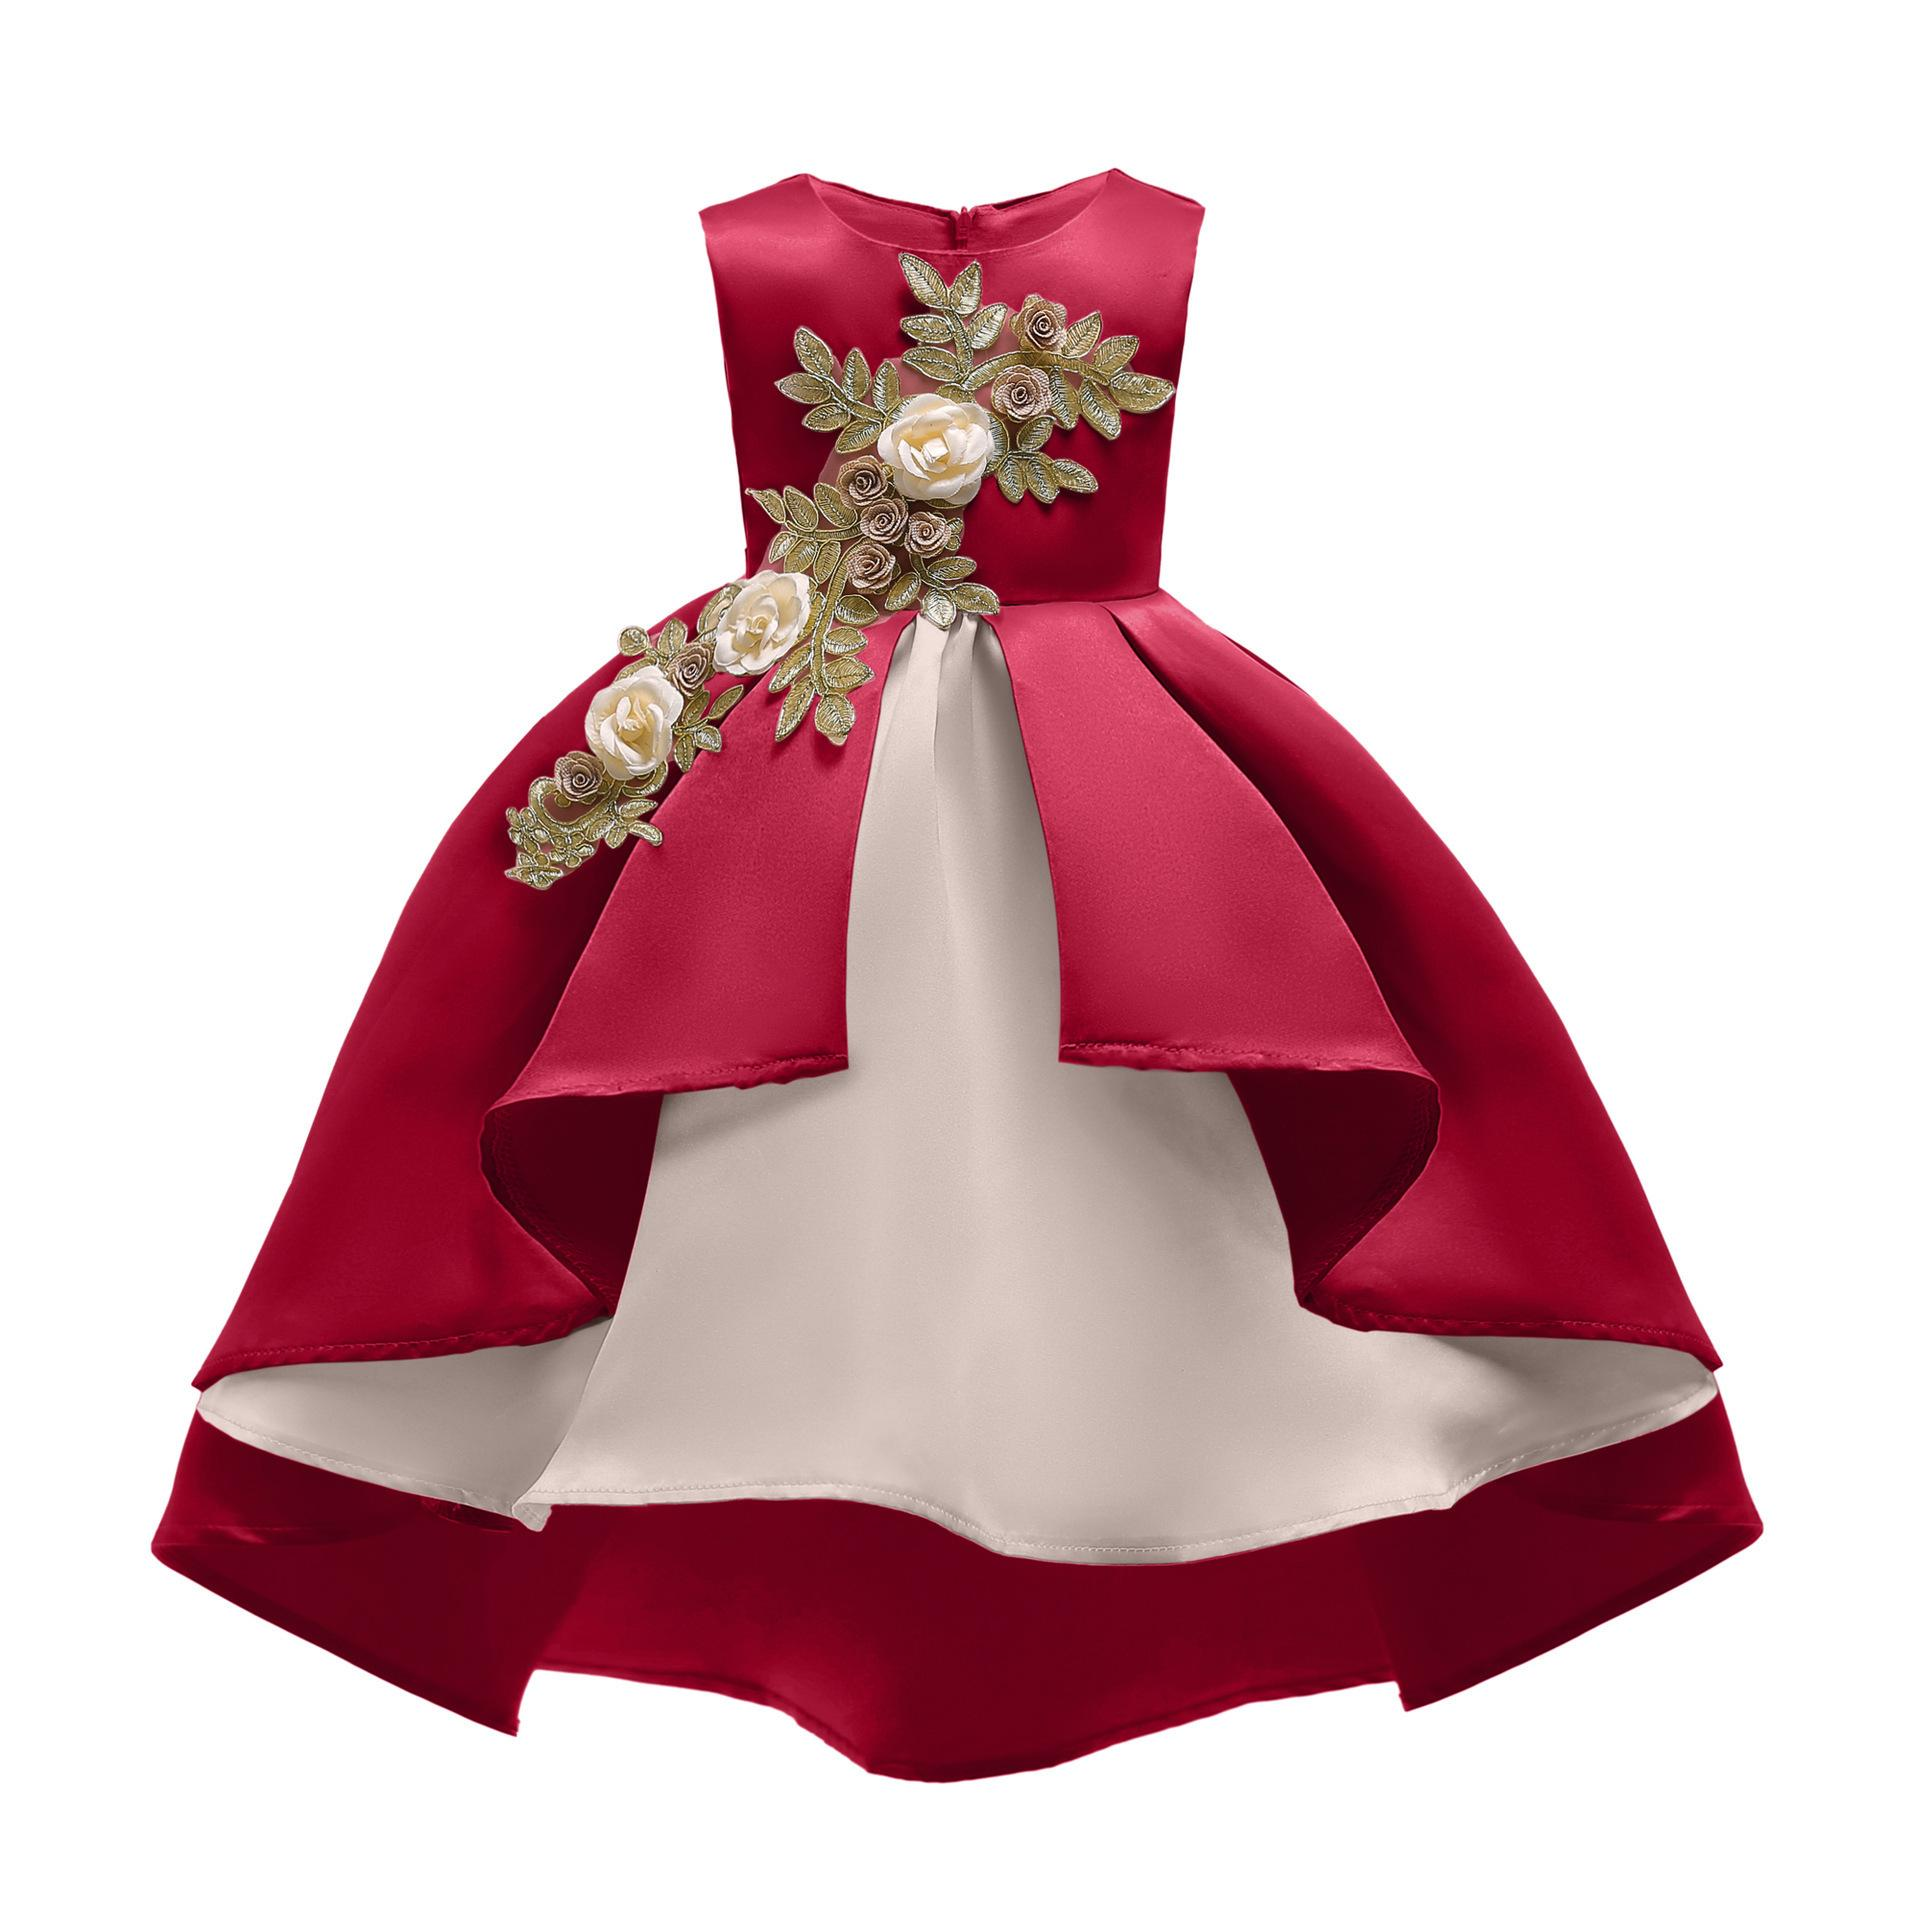 f8d78c6bf0258 2019 New Year Kids Evening Dress Baby Girl First Birthday Party Formal  Dress Children s Princess Beautiful Floral Clothes